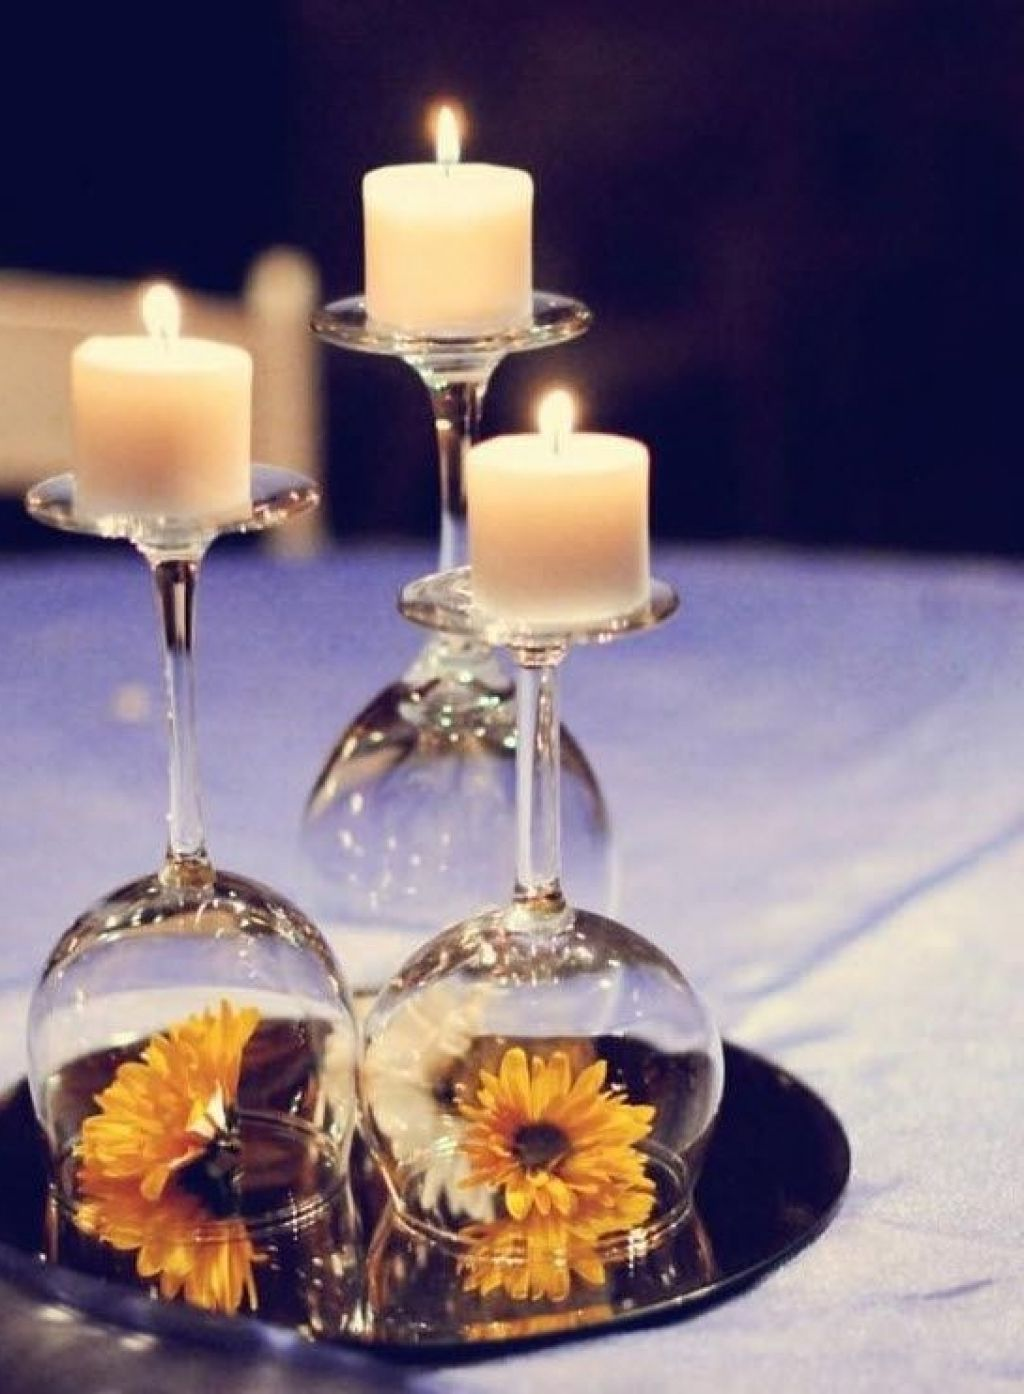 Wine Glass Centerpiece Ideas : Wedding centerpiece ideas from pinterest wine glass